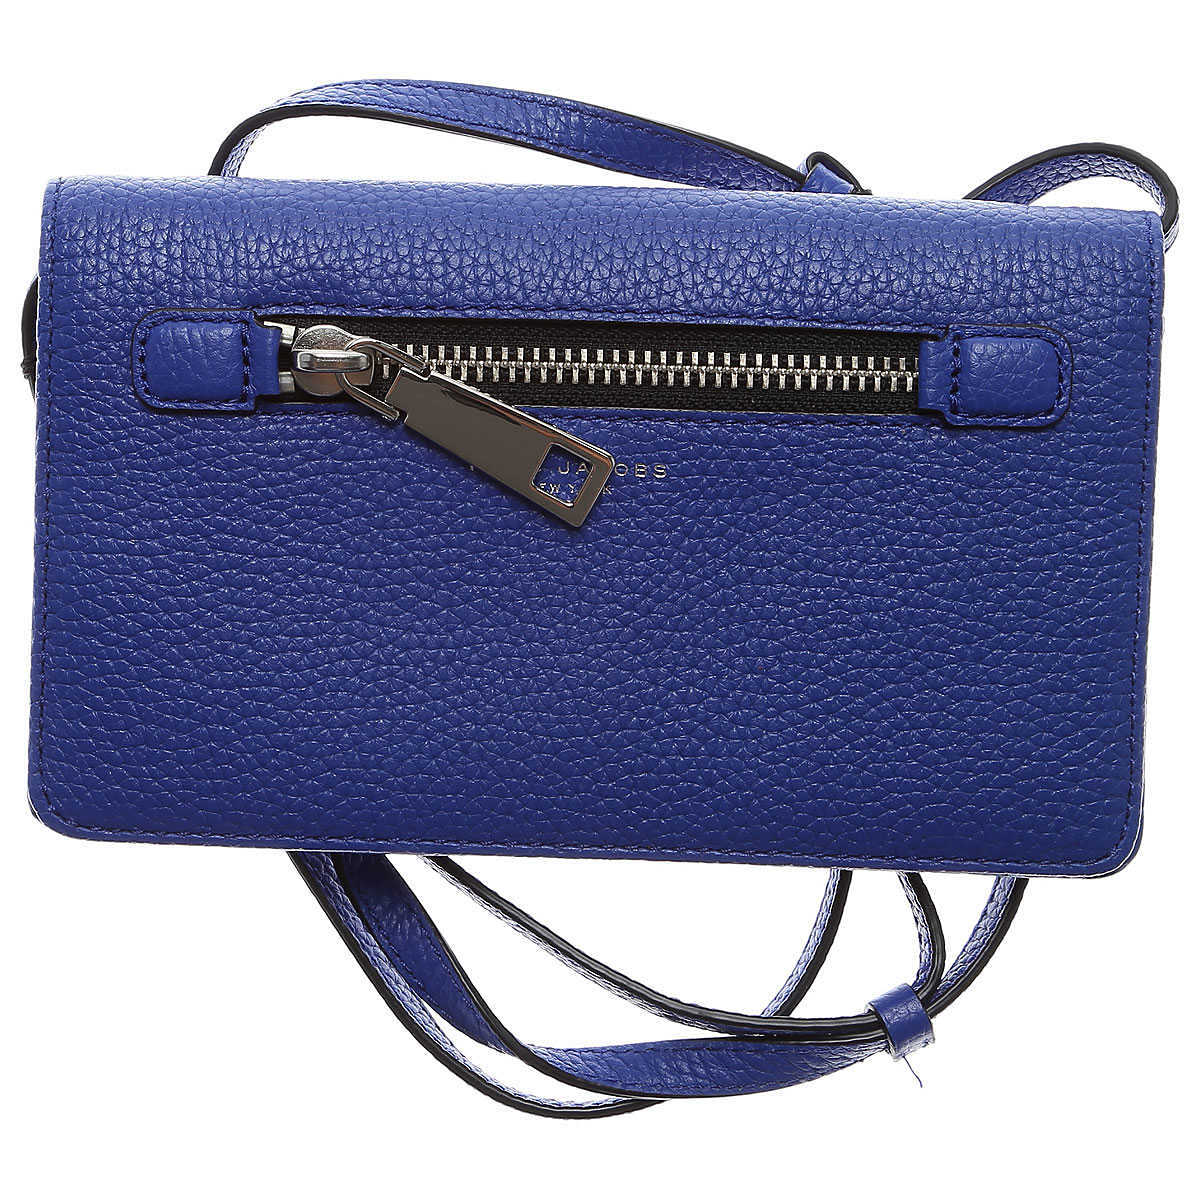 Marc Jacobs Wallet for Women Blue Canada - GOOFASH - Womens WALLETS